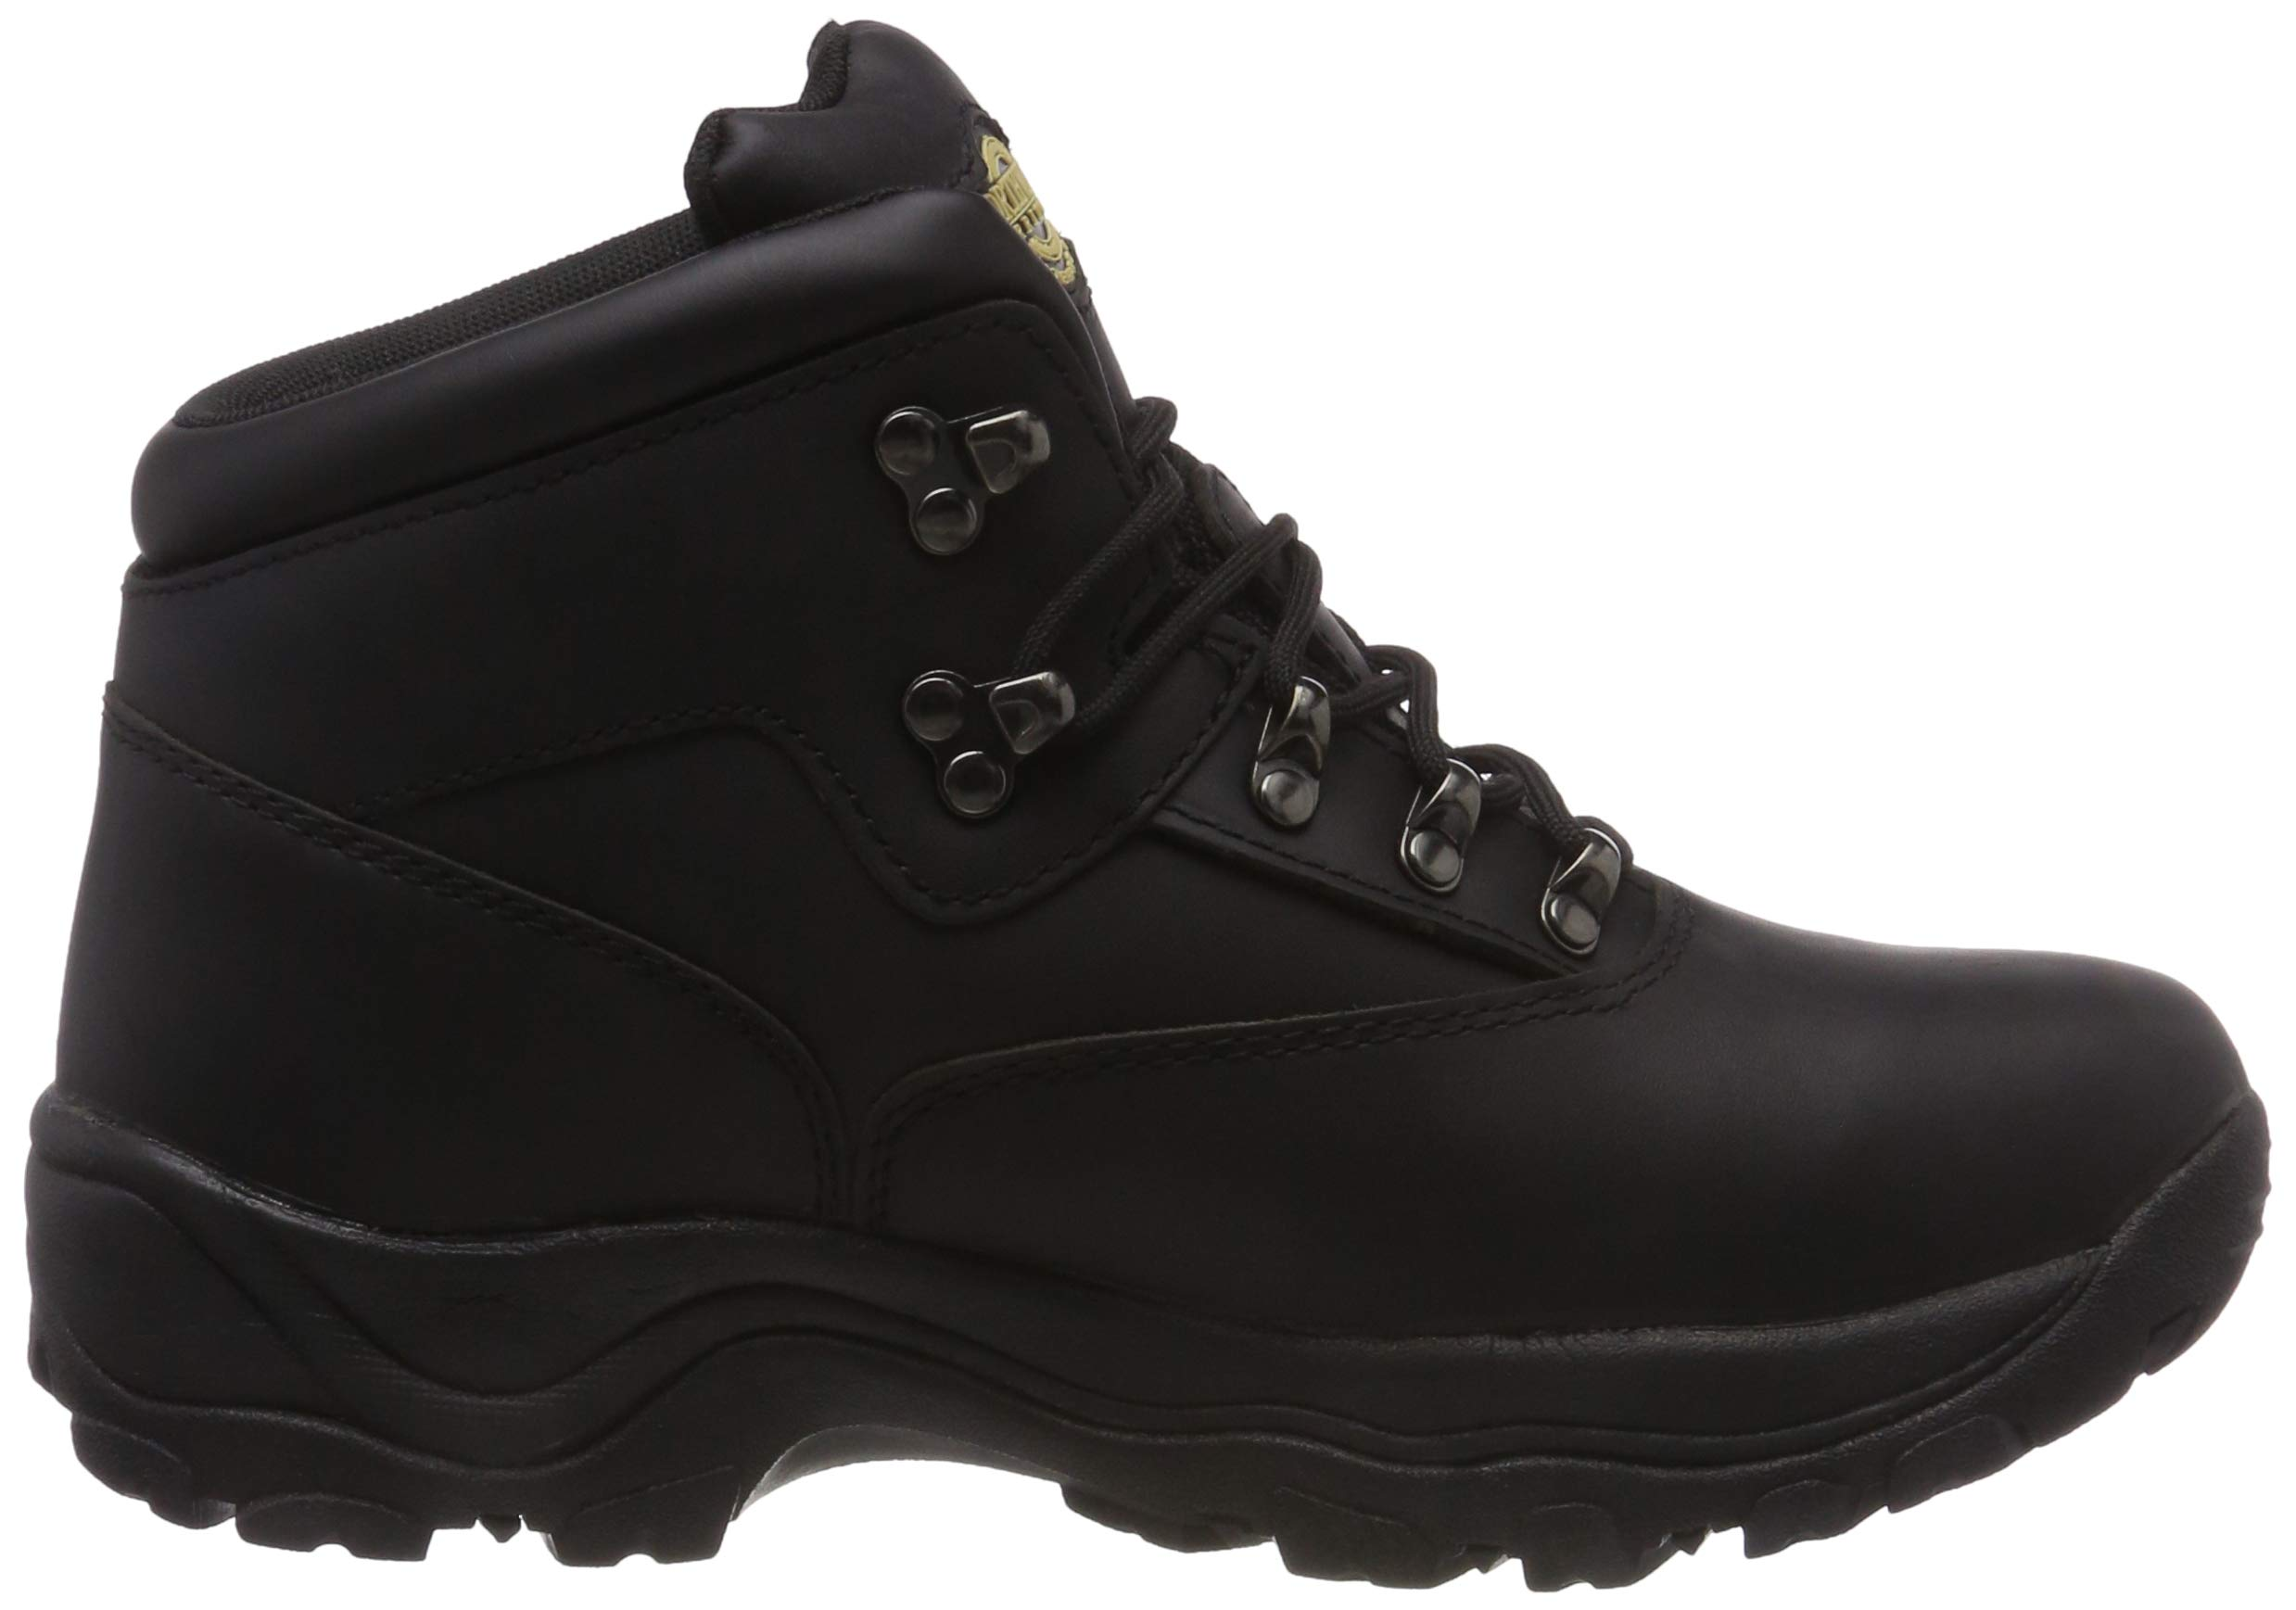 Northwest Men Hiking Walking Trail Boots Leather Waterproof Ankle High Rise Shoe 6